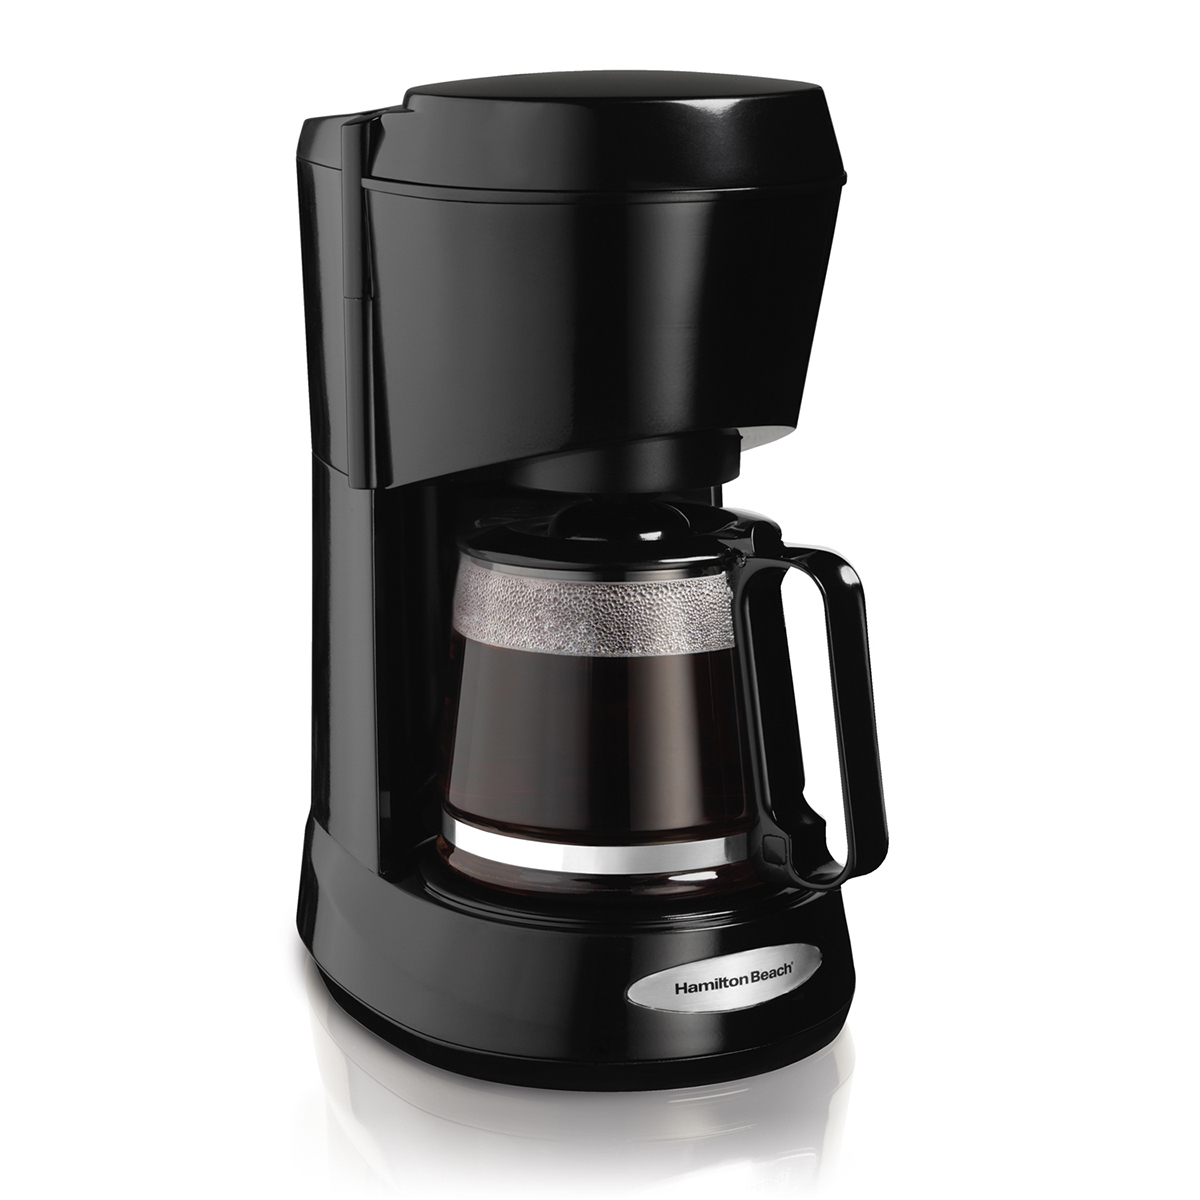 5 Cup Personal Coffee Maker, Black (48136)